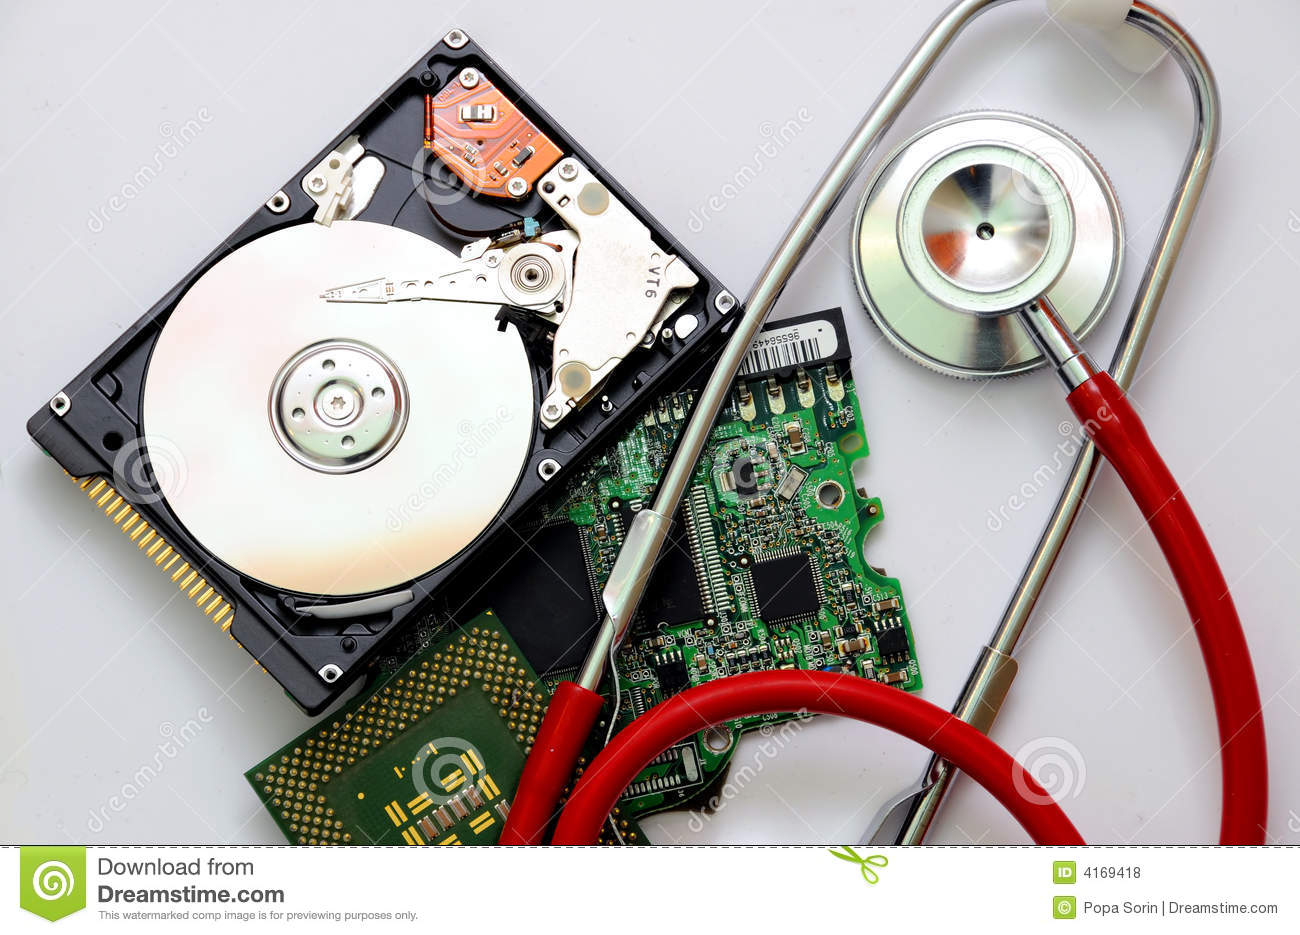 Stethoscope and computer parts